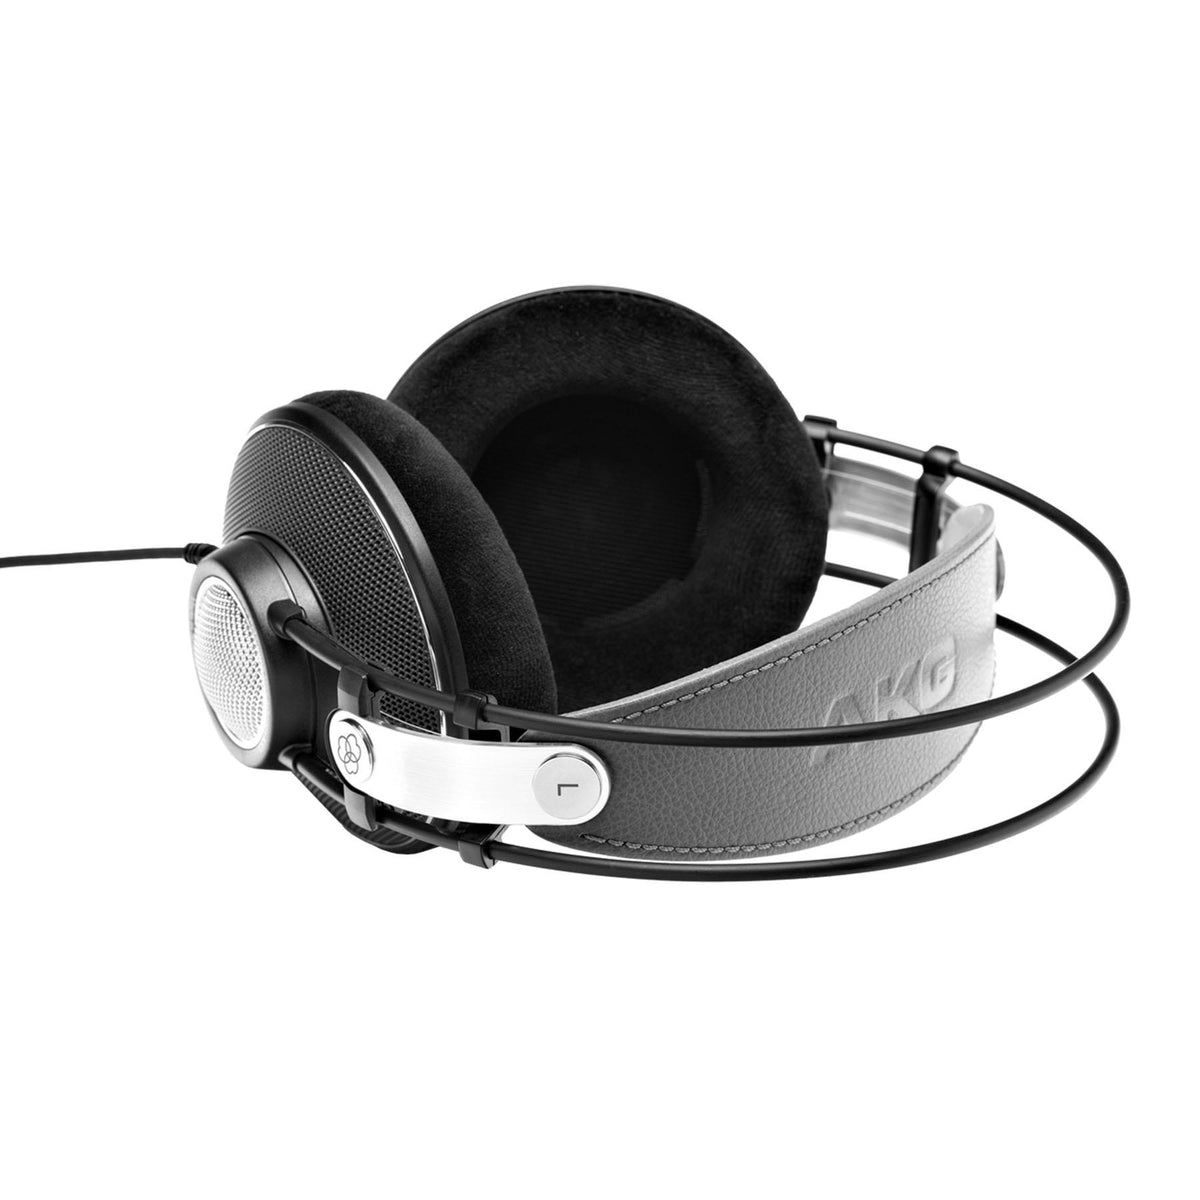 AKG K612 Pro Open Reference Studio Headphones